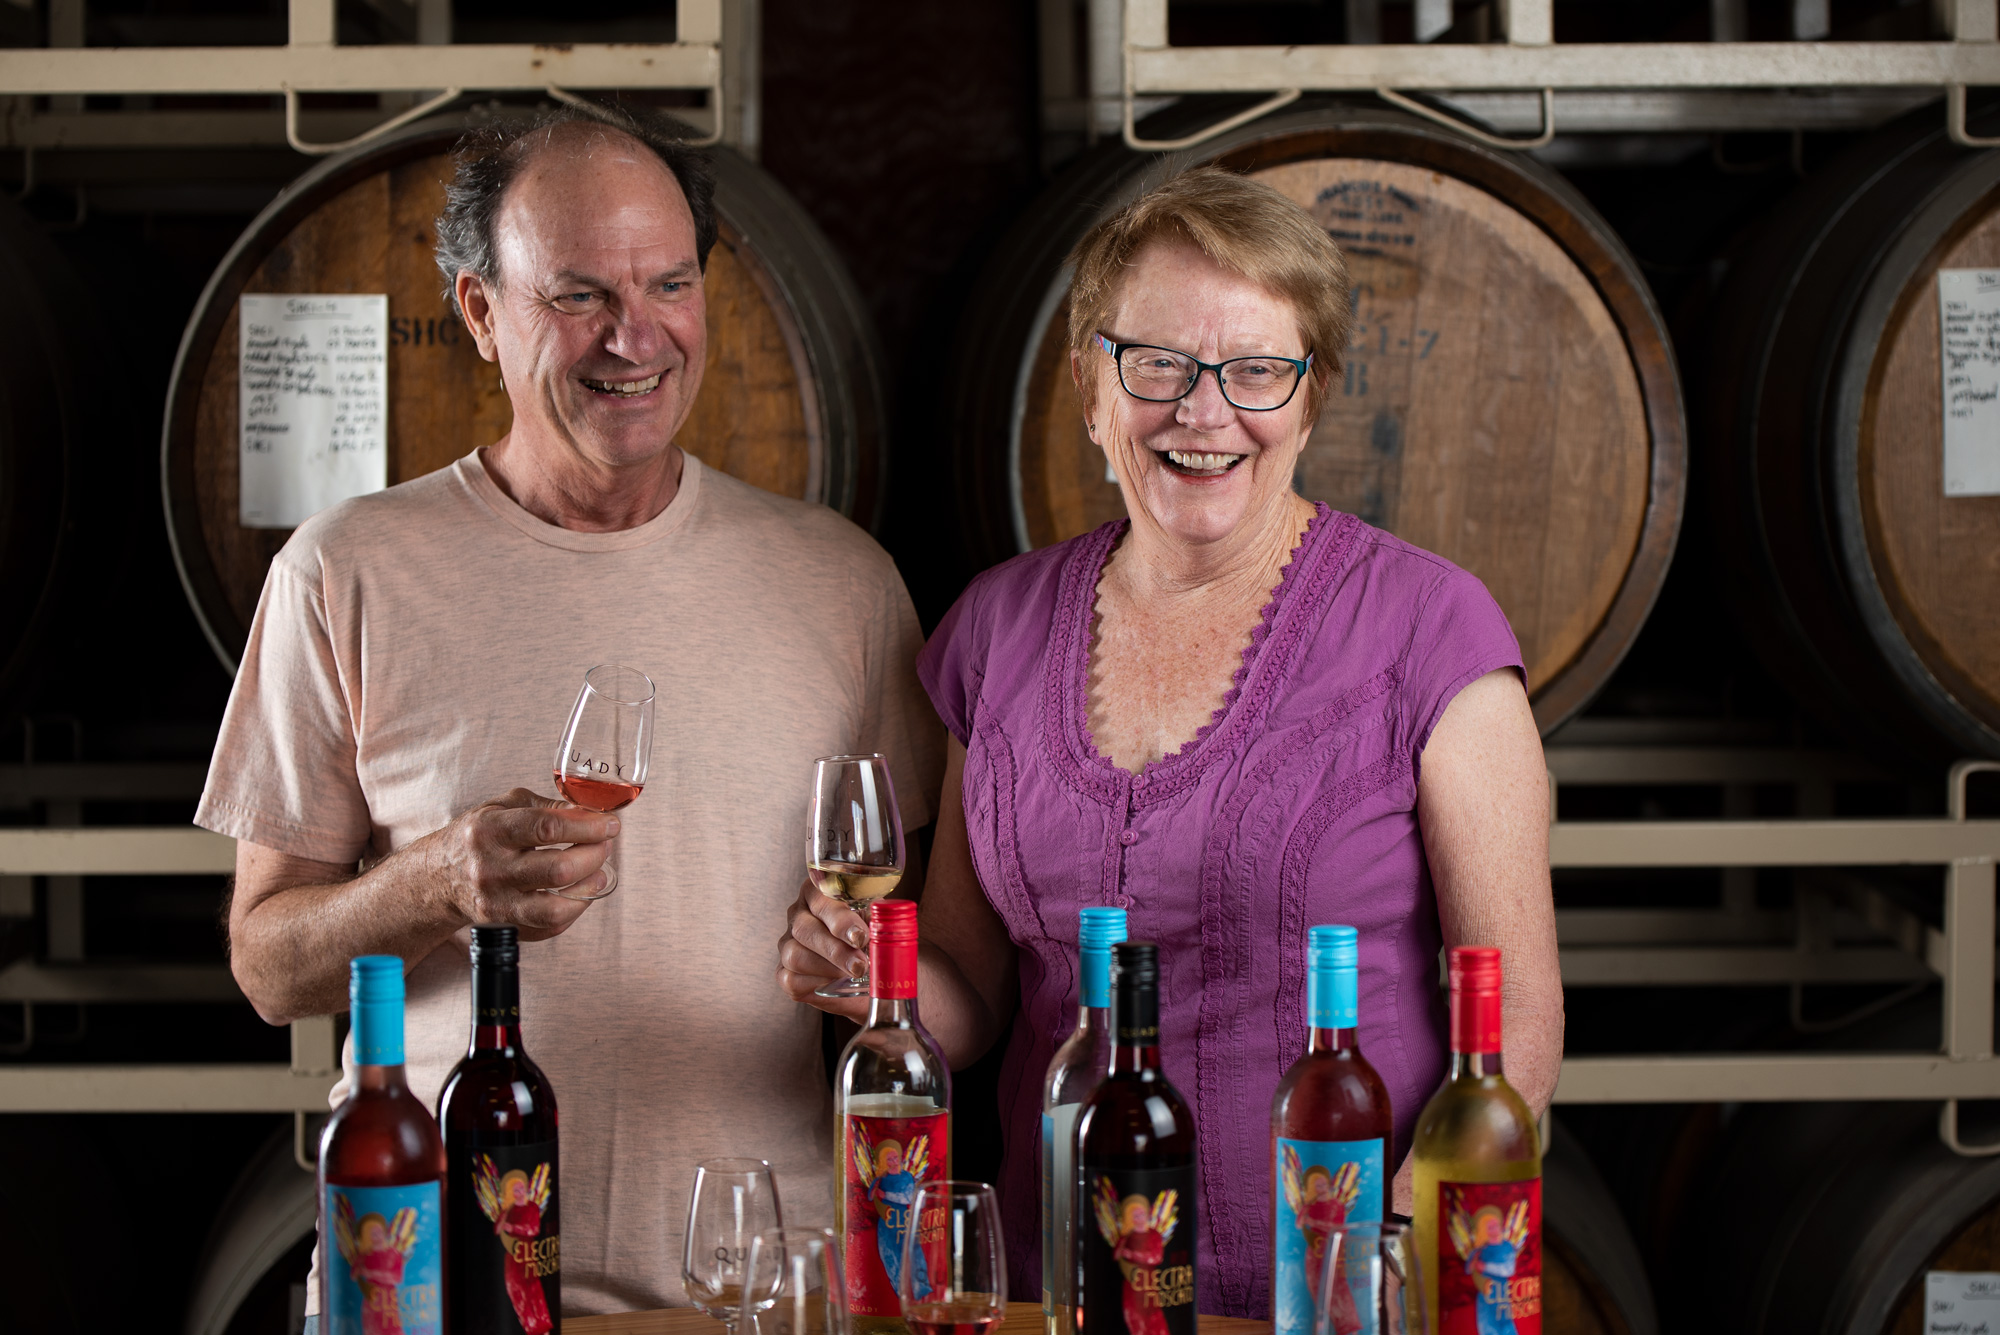 Portrait of Andrew and Laurel Quady, the founders, owners and current Chief Officers at Quady Winery